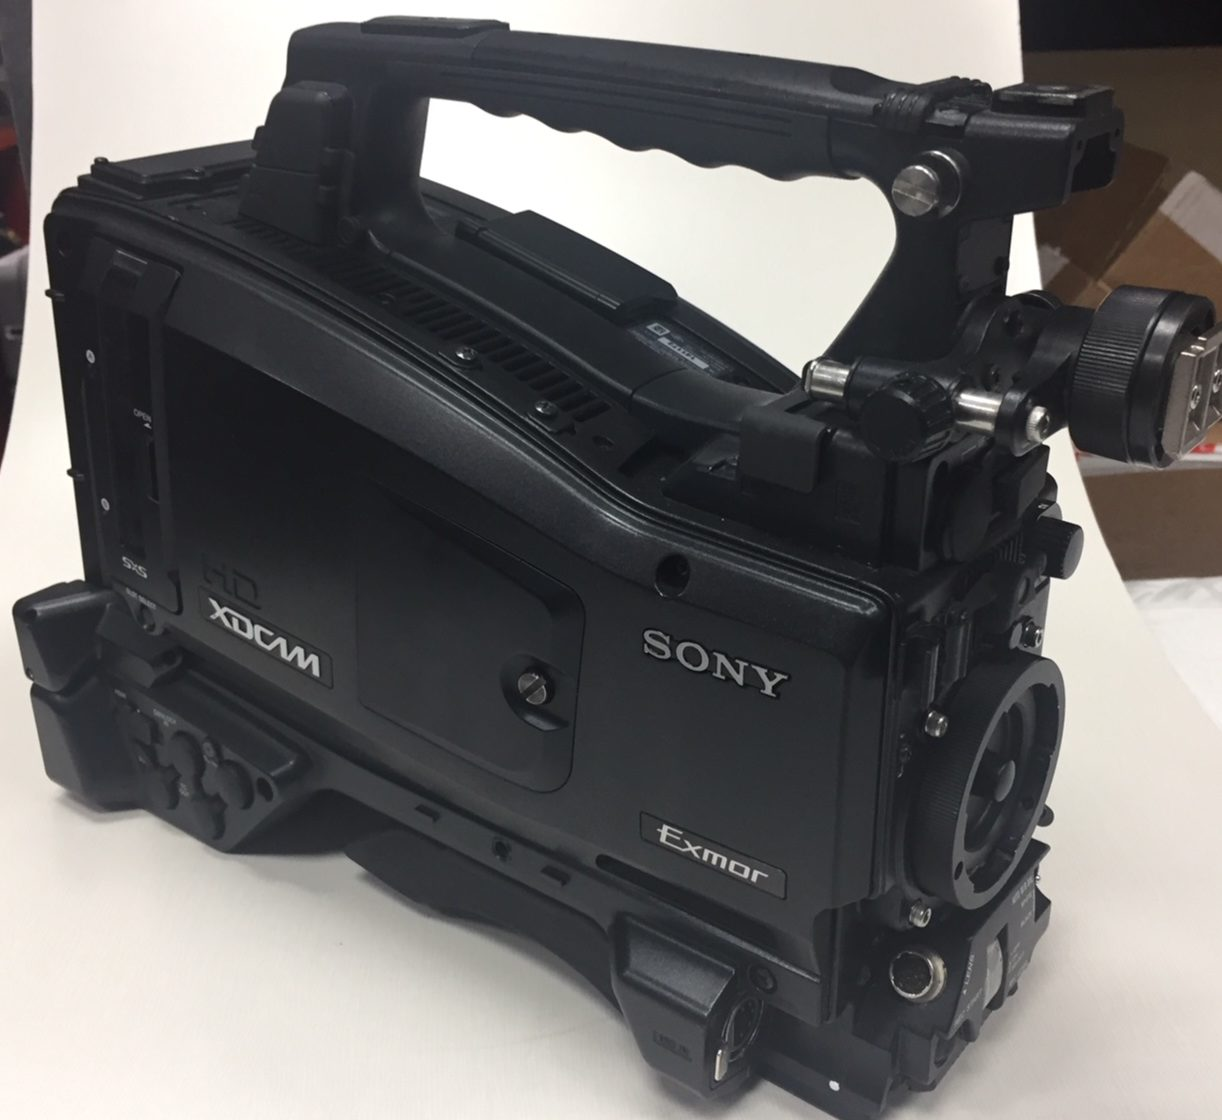 Sony PMW-400L with Viewfinder